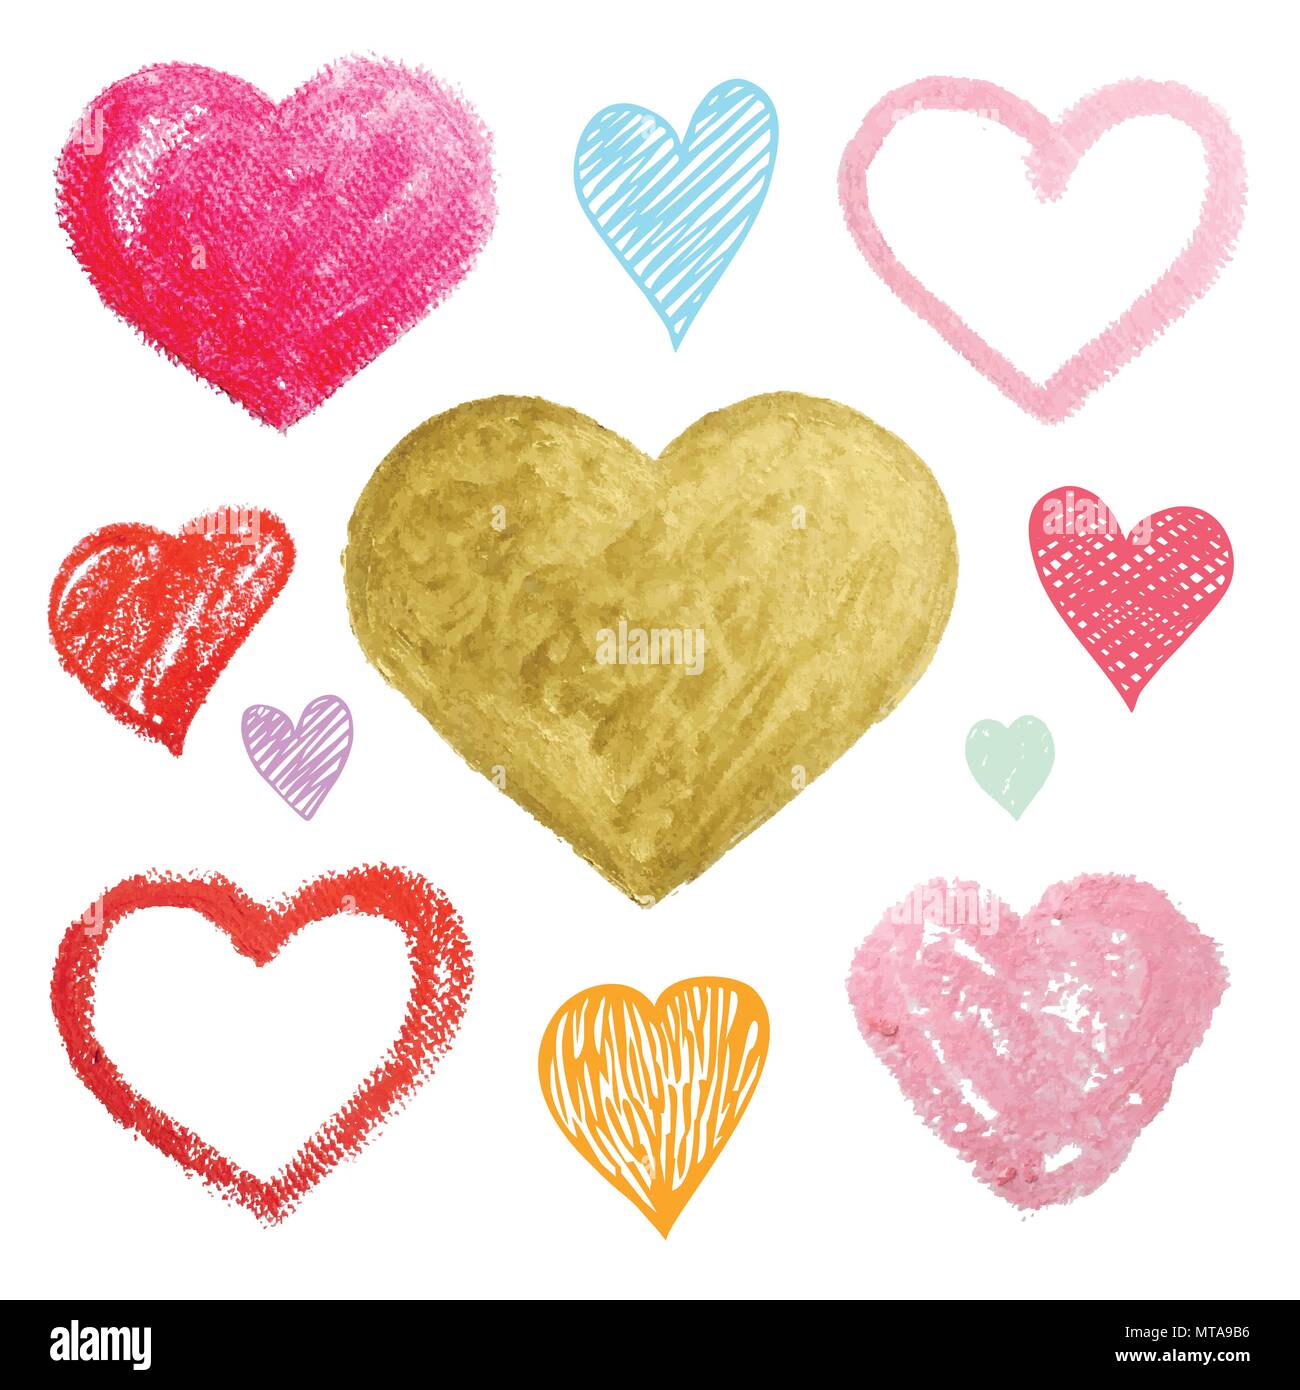 vector set of colored hearts in different shapes and styles over